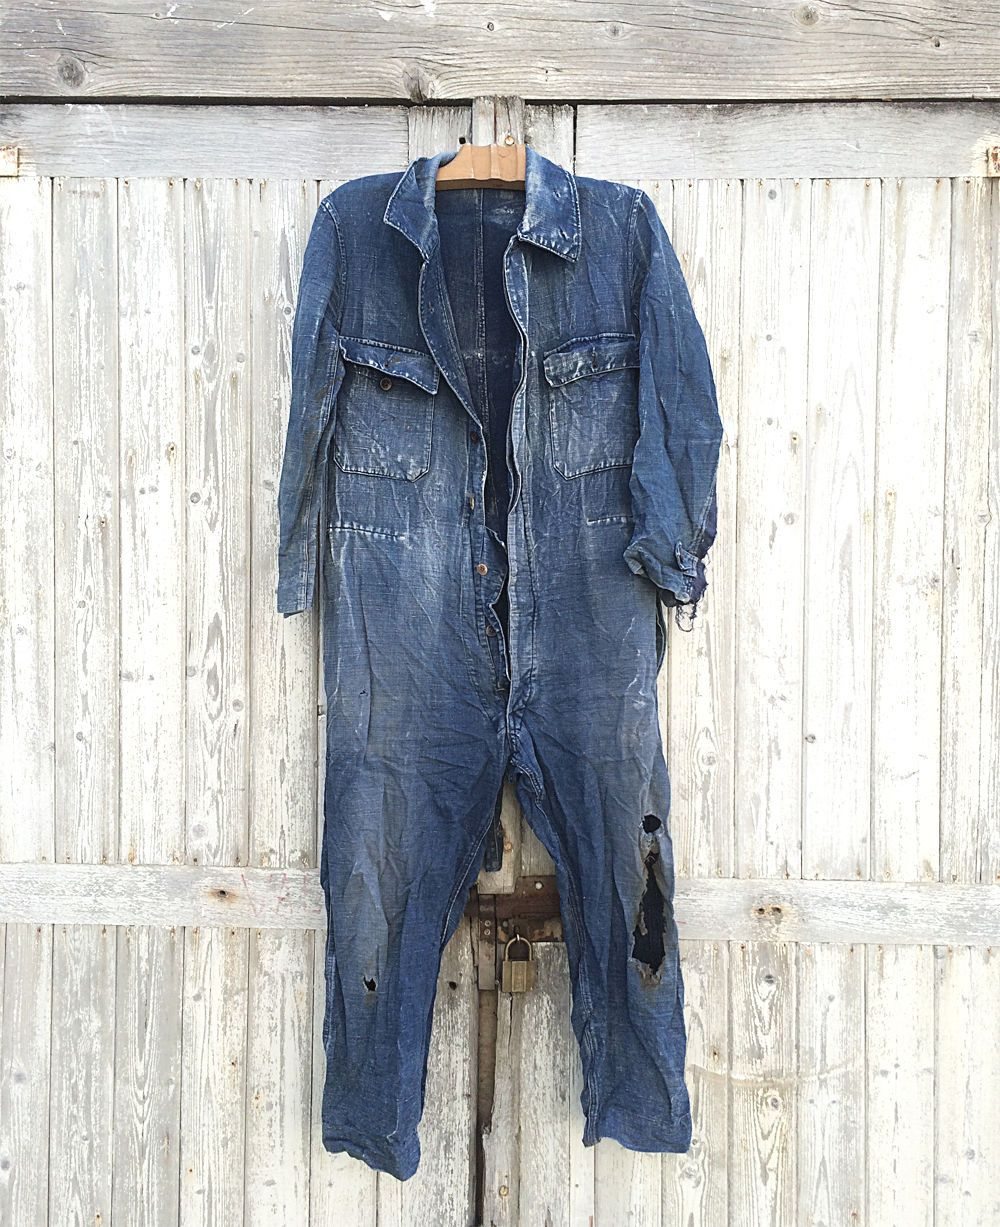 a840aa8f730 40s French Jumpsuit Darned Patched Workwear Denim Indigo Blue Overall  Moleskine